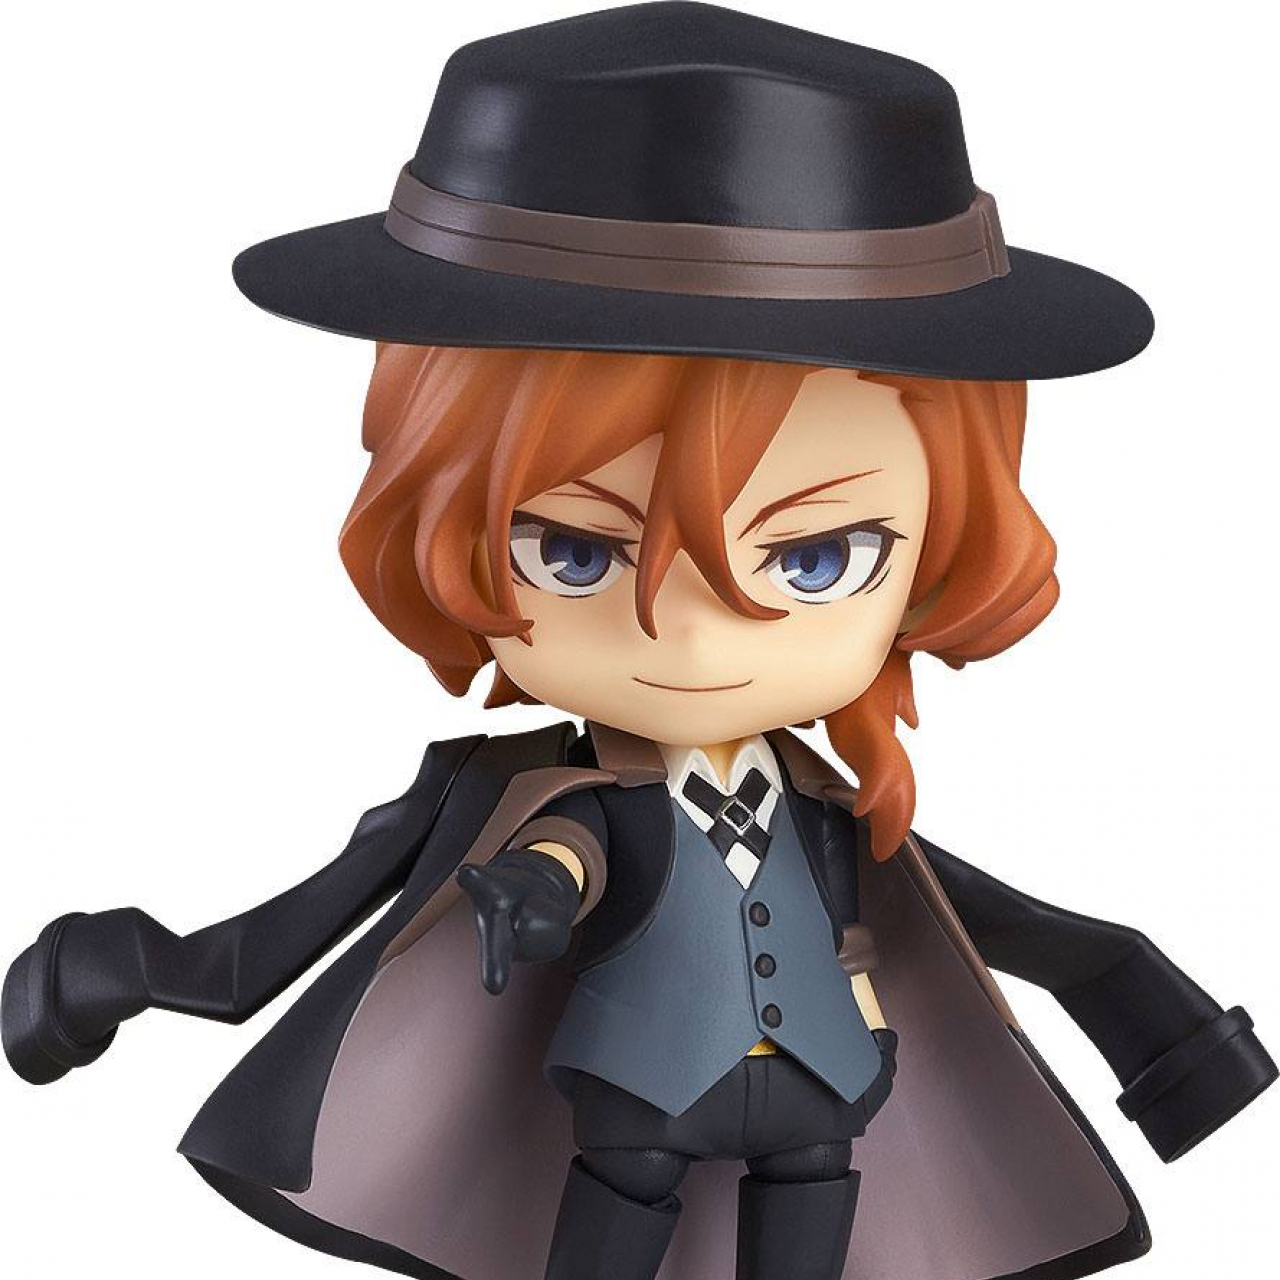 Bungo Stray Dogs Nendoroid Action Figure Chuya Nakahara 10 cm